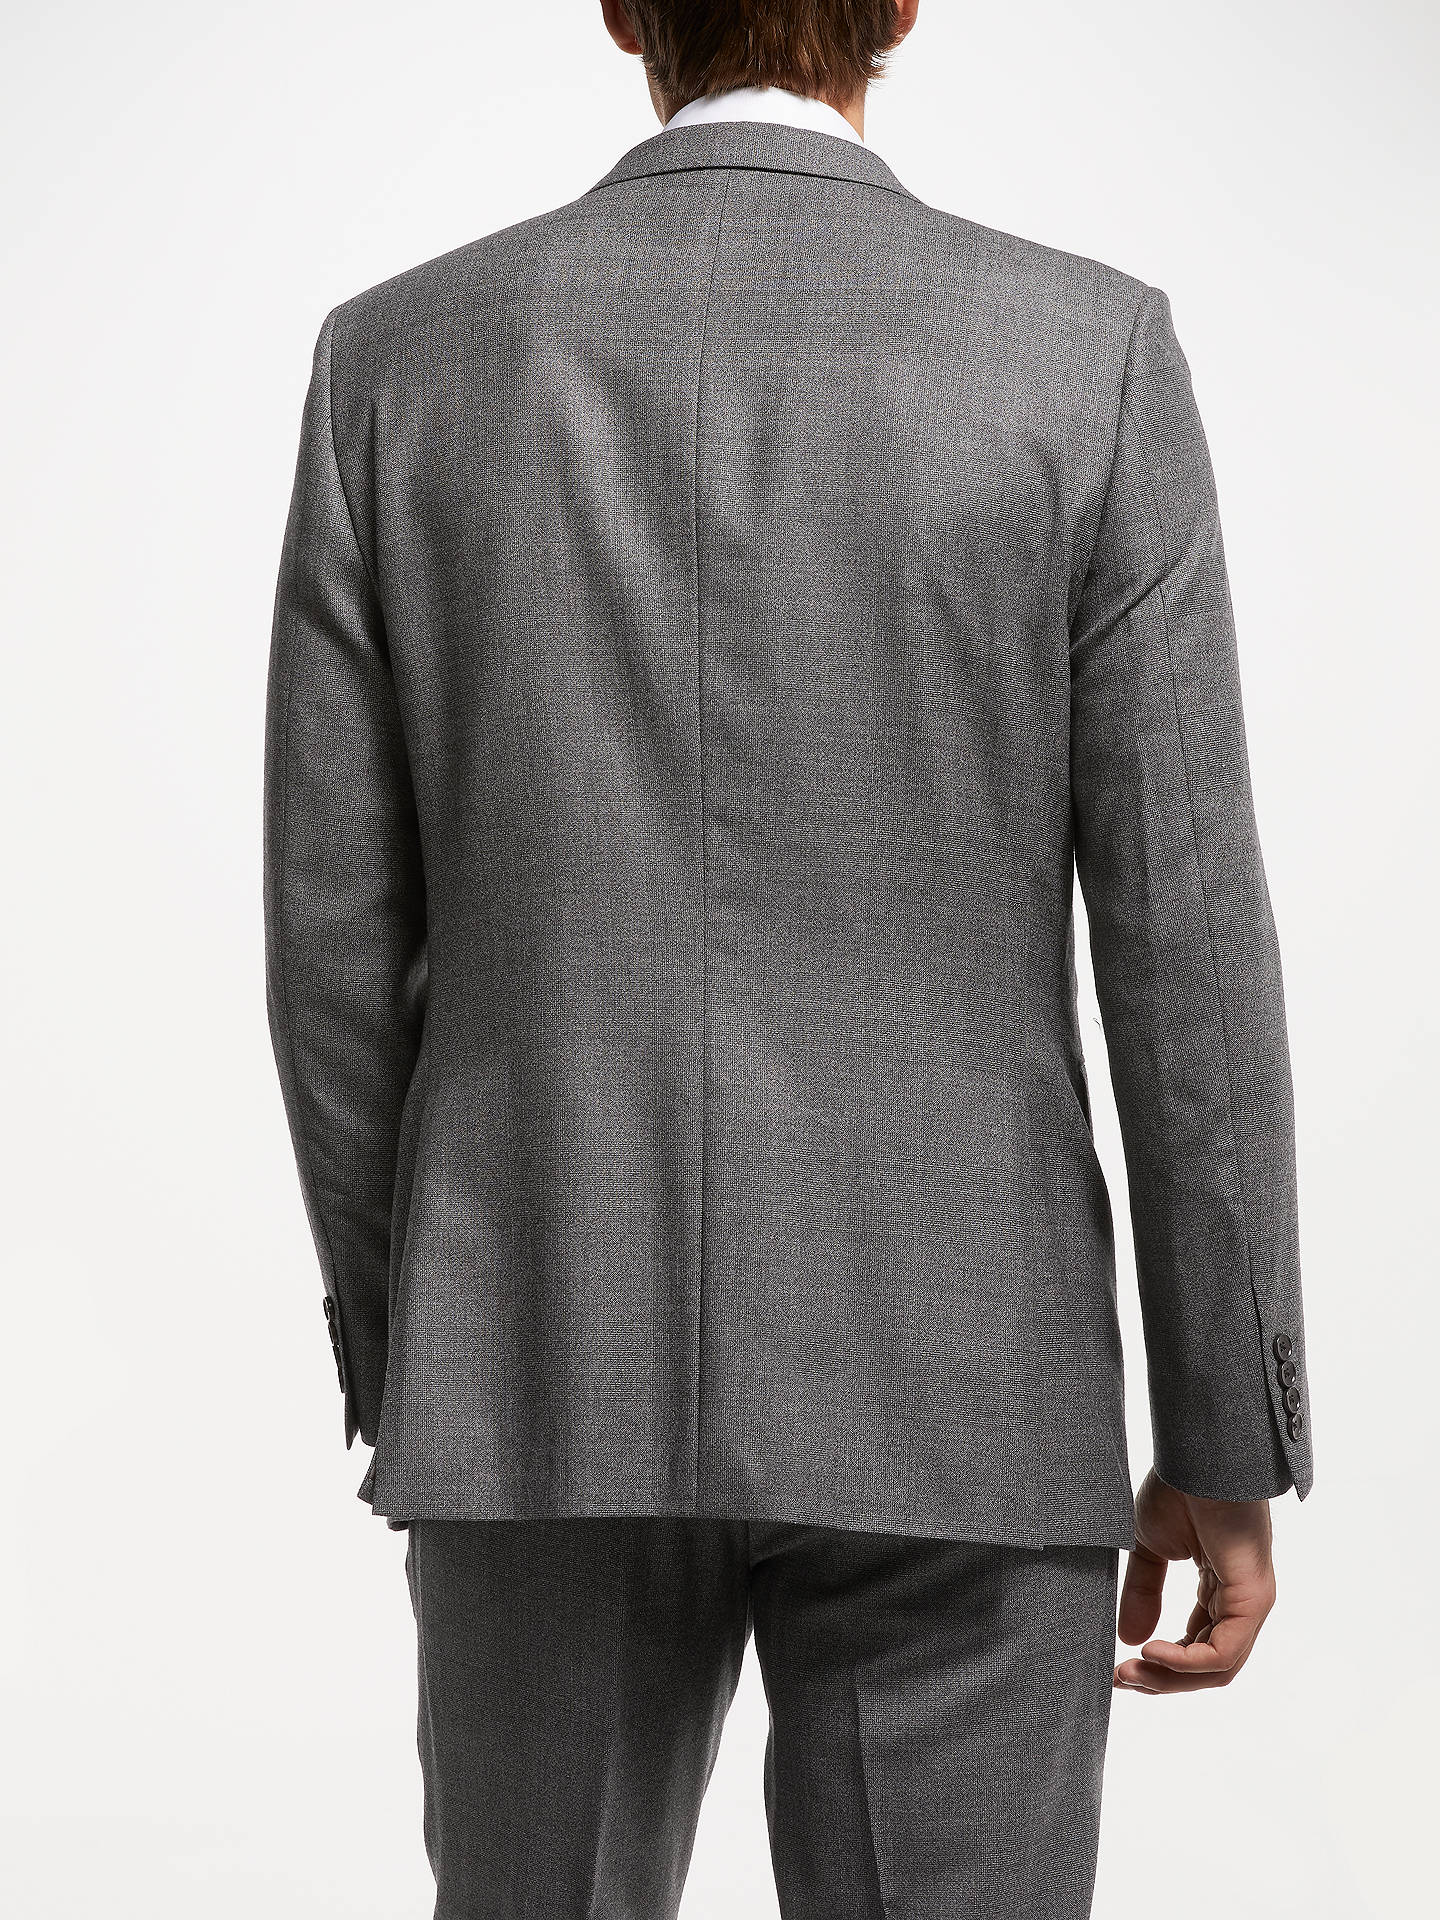 Buy John Lewis & Partners Zegna Check Suit Jacket, Grey, 40L Online at johnlewis.com